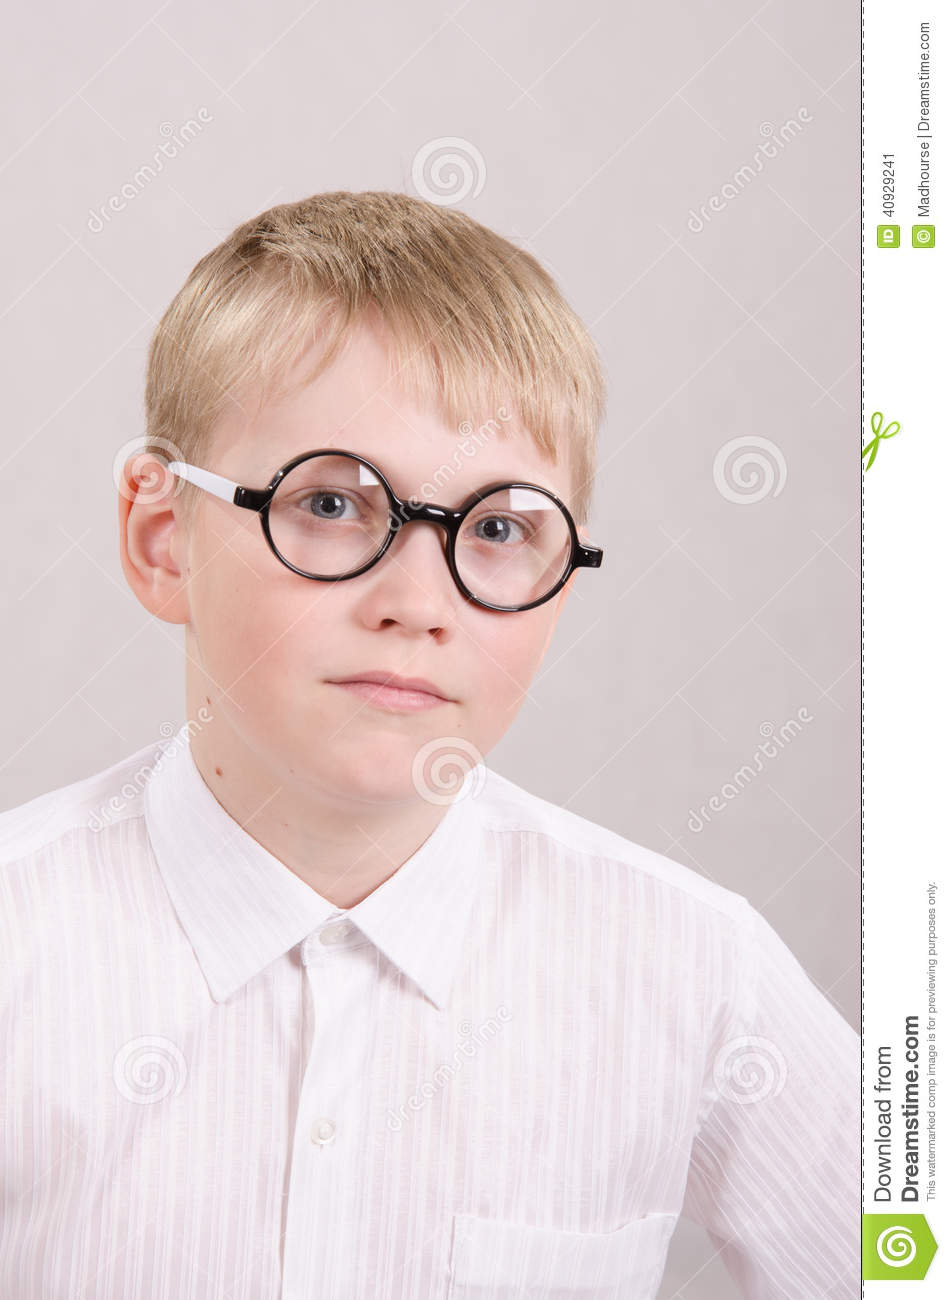 Twelve Year Old Boy With Glasses Stock Photo   Image  40929241